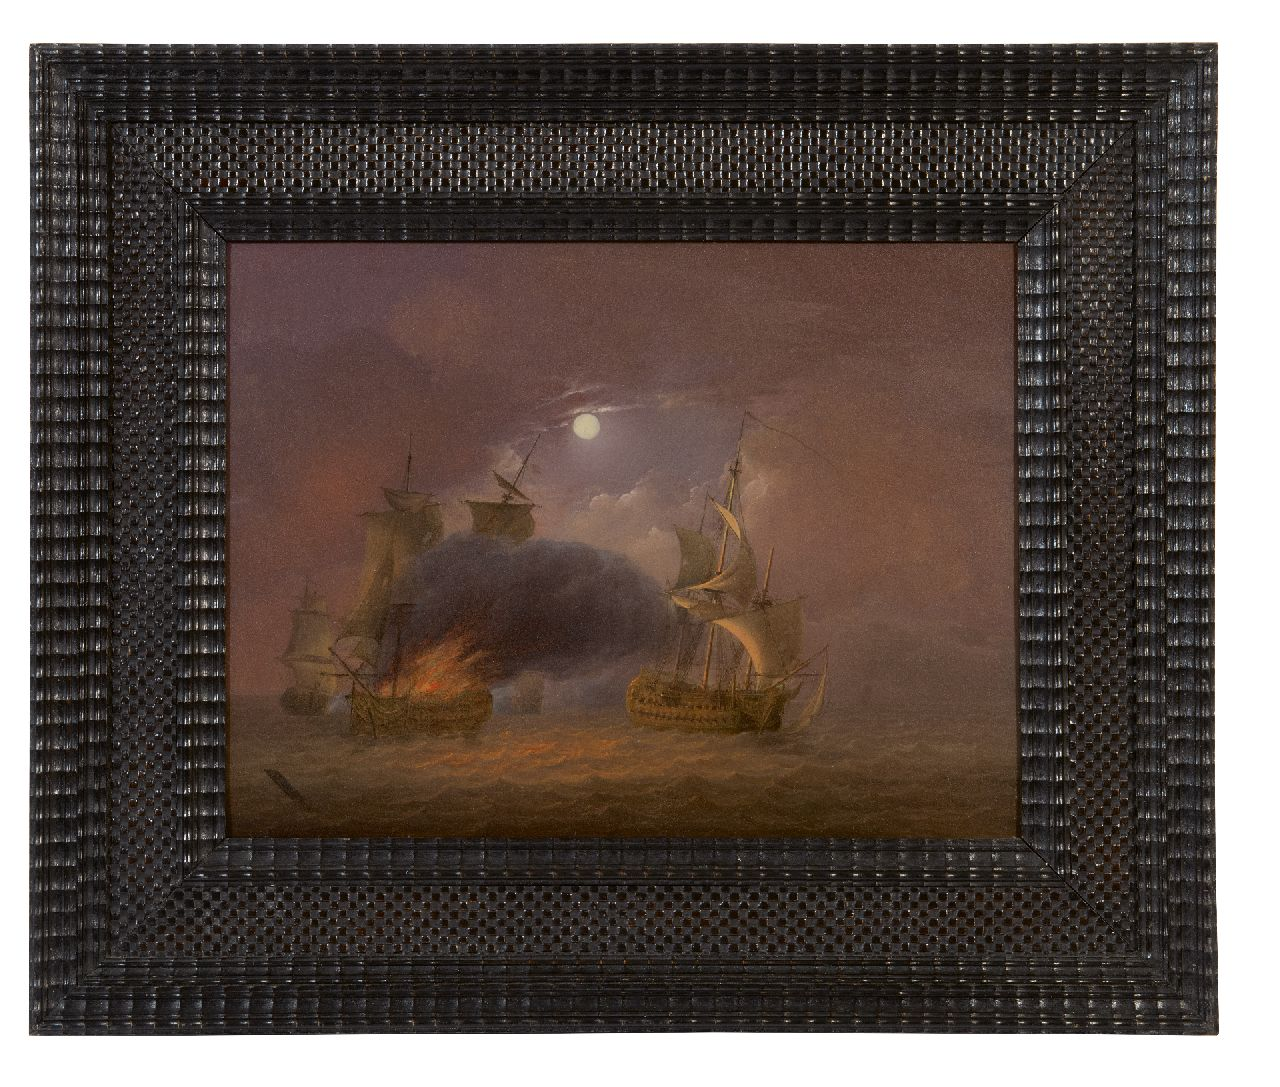 Os J. van | Jan van Os | Paintings offered for sale | A naval battle in moonlight, oil on panel 26.6 x 35.3 cm, signed l.l. and painted ca. 1800